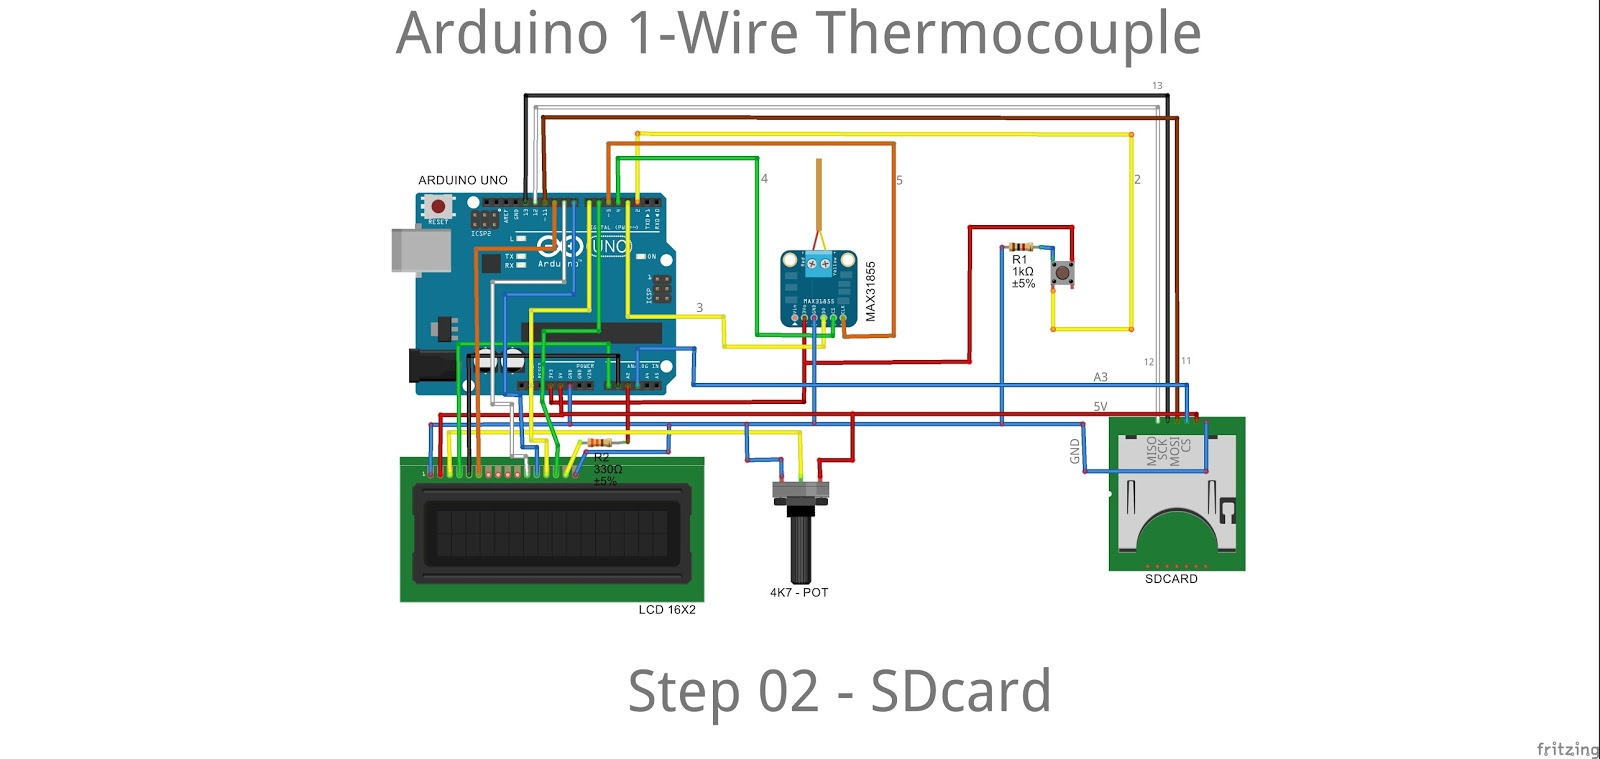 13 Arduserie Arduino 1 Wire Thermocouple In The Kitchen Wiring Lcd Step 03 Rtclib Test Ard File Thermokitchen Ivino Description This Code Disables And Sd Card To Rtc